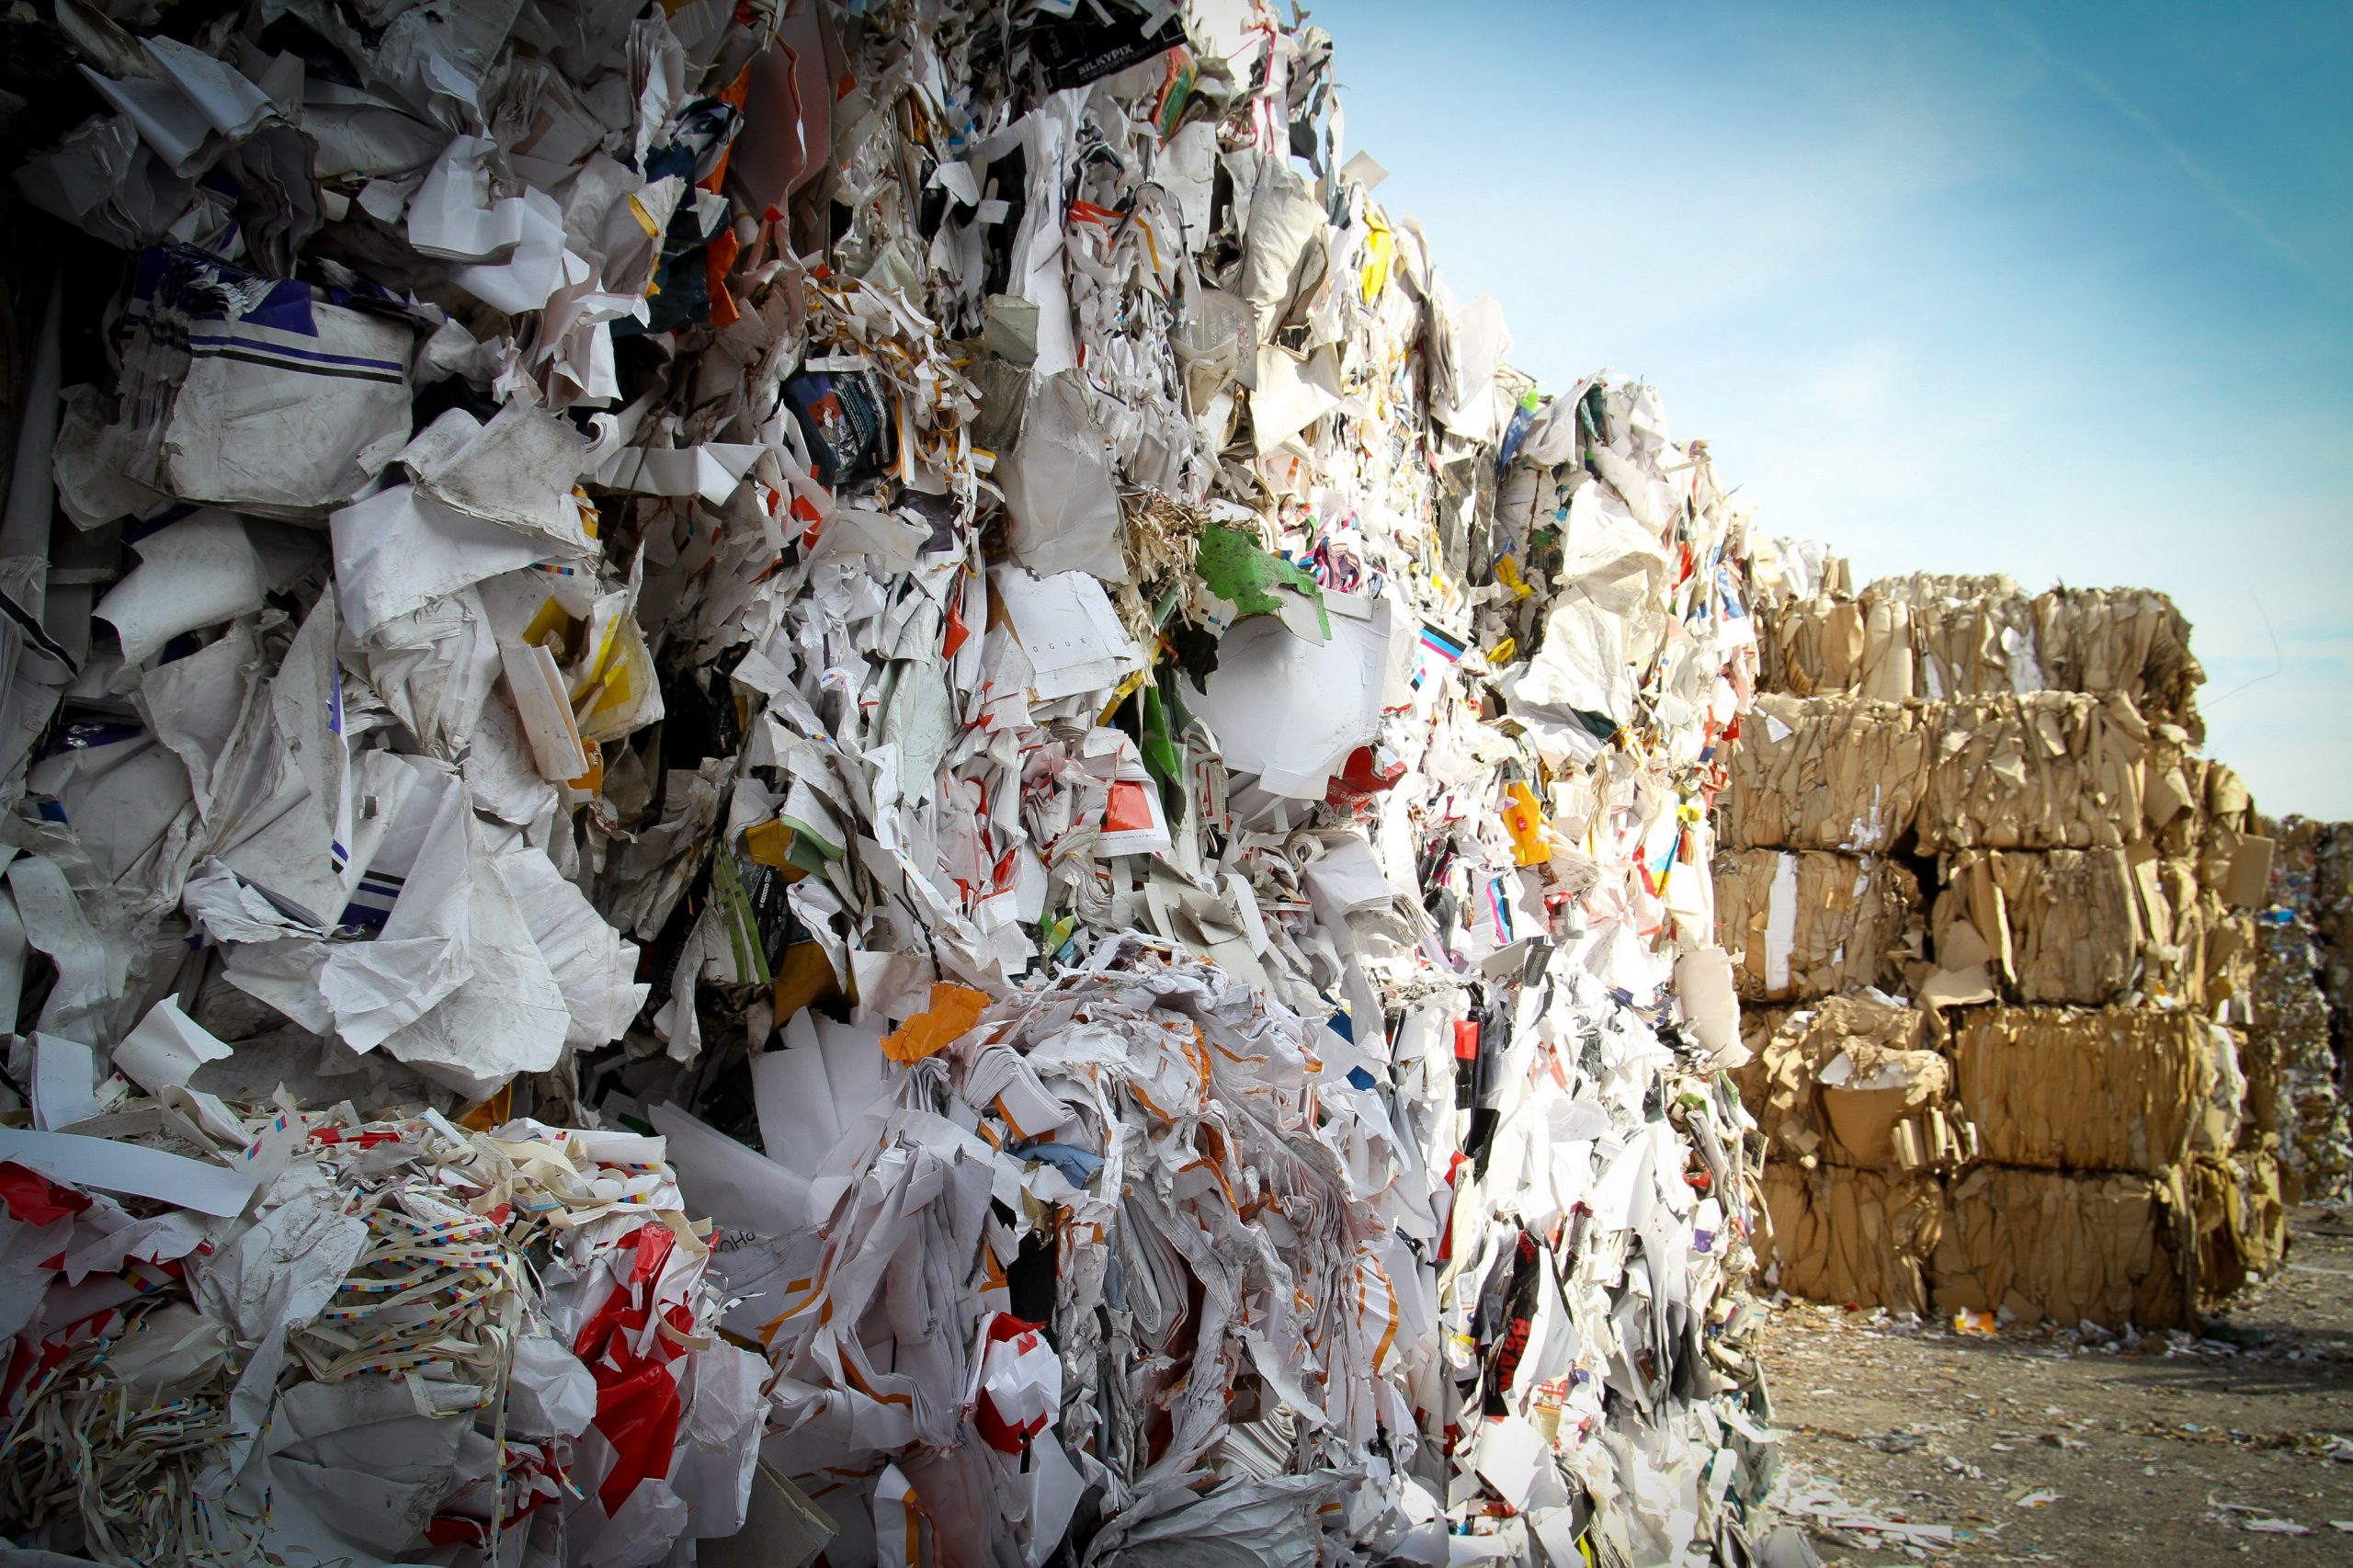 Countries that have poor waste management export their waste